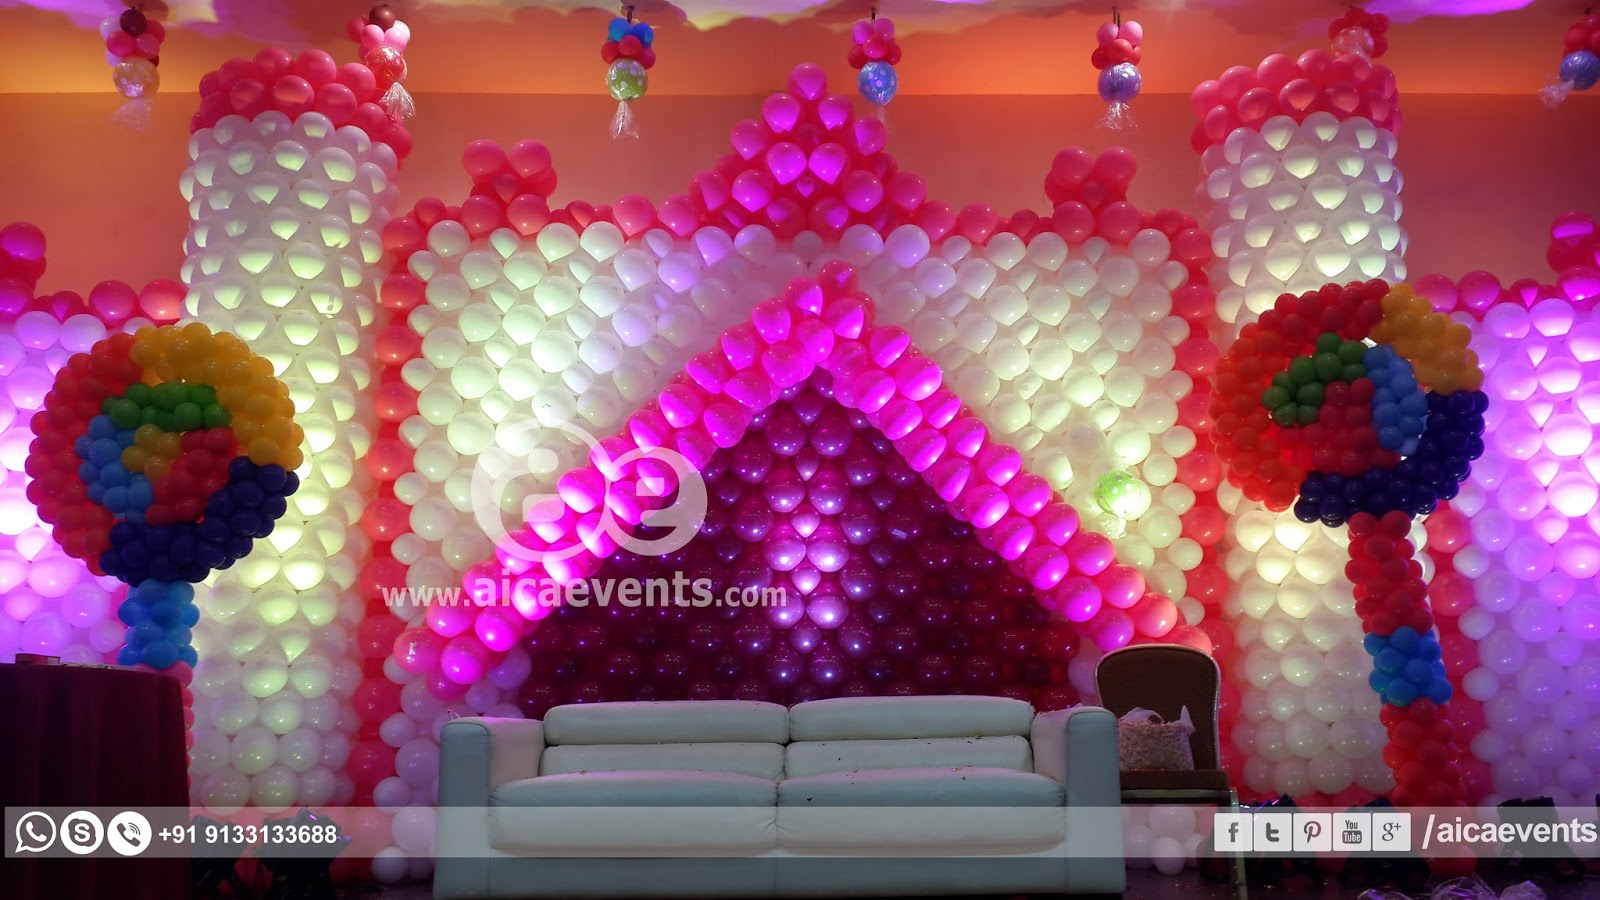 aicaevents Castle with Balloon Wall Decoration